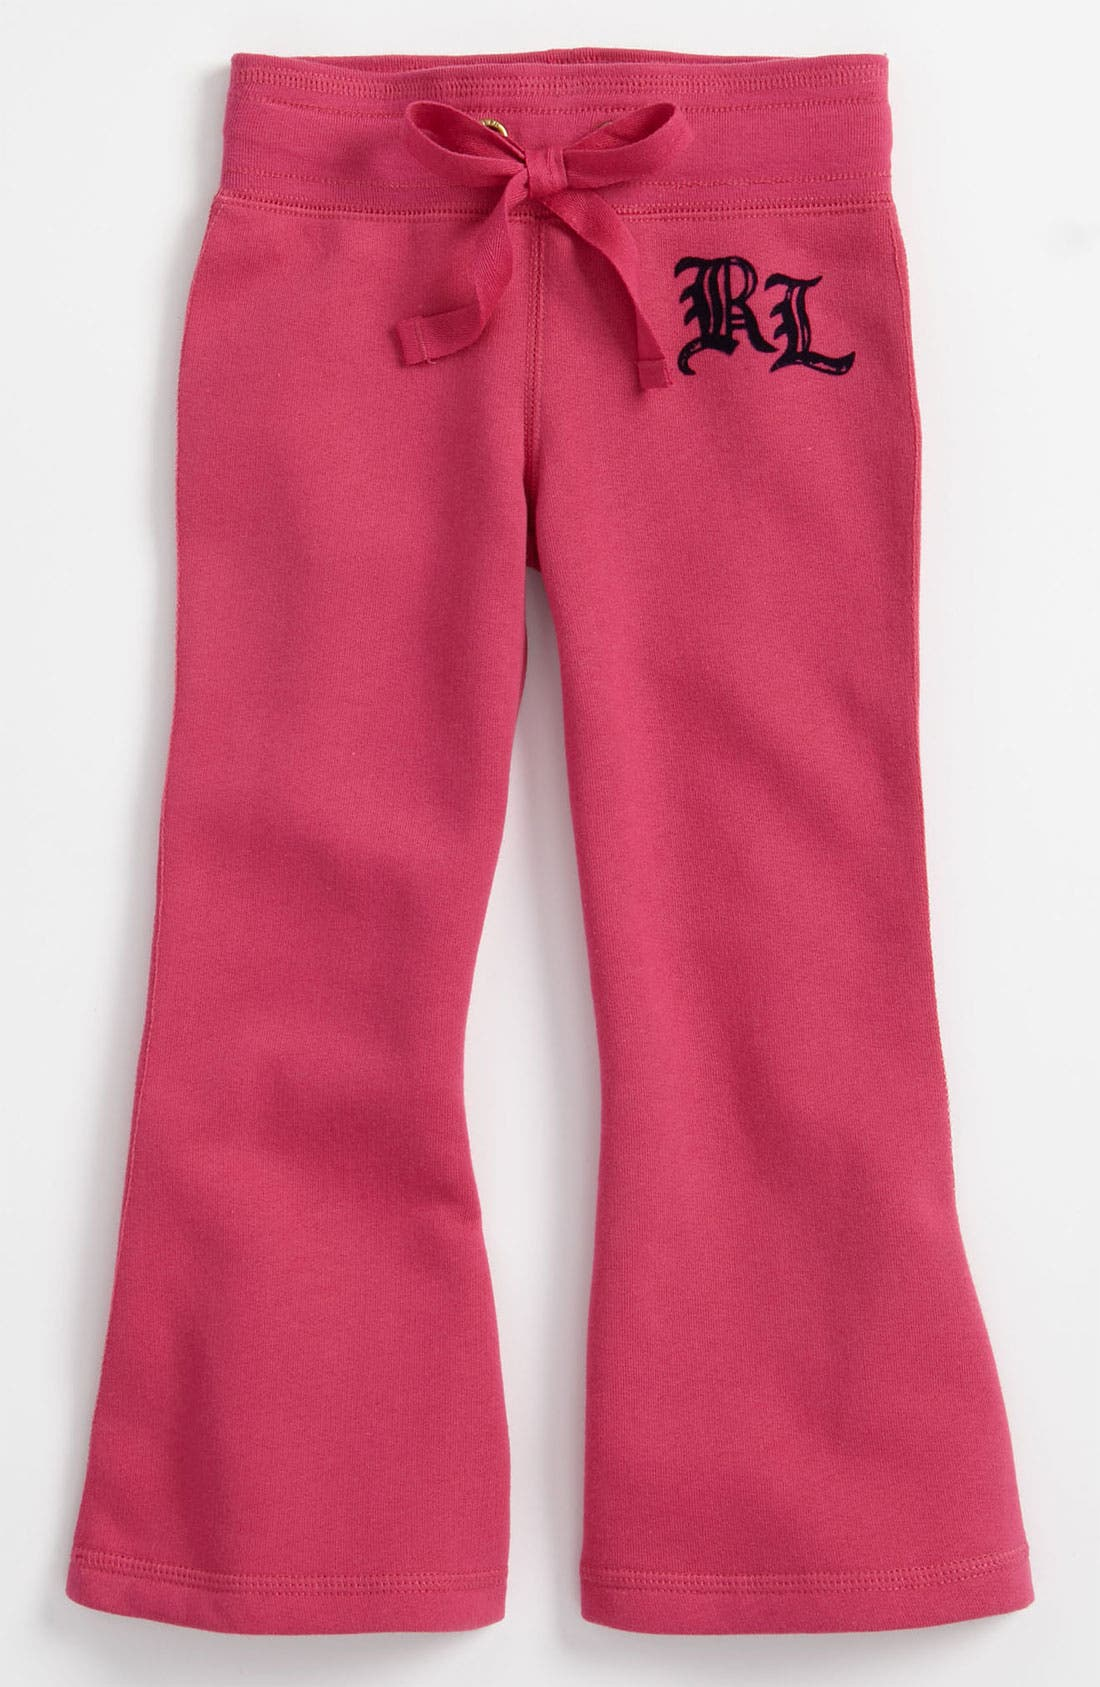 Alternate Image 1 Selected - Ralph Lauren Pants (Toddler)